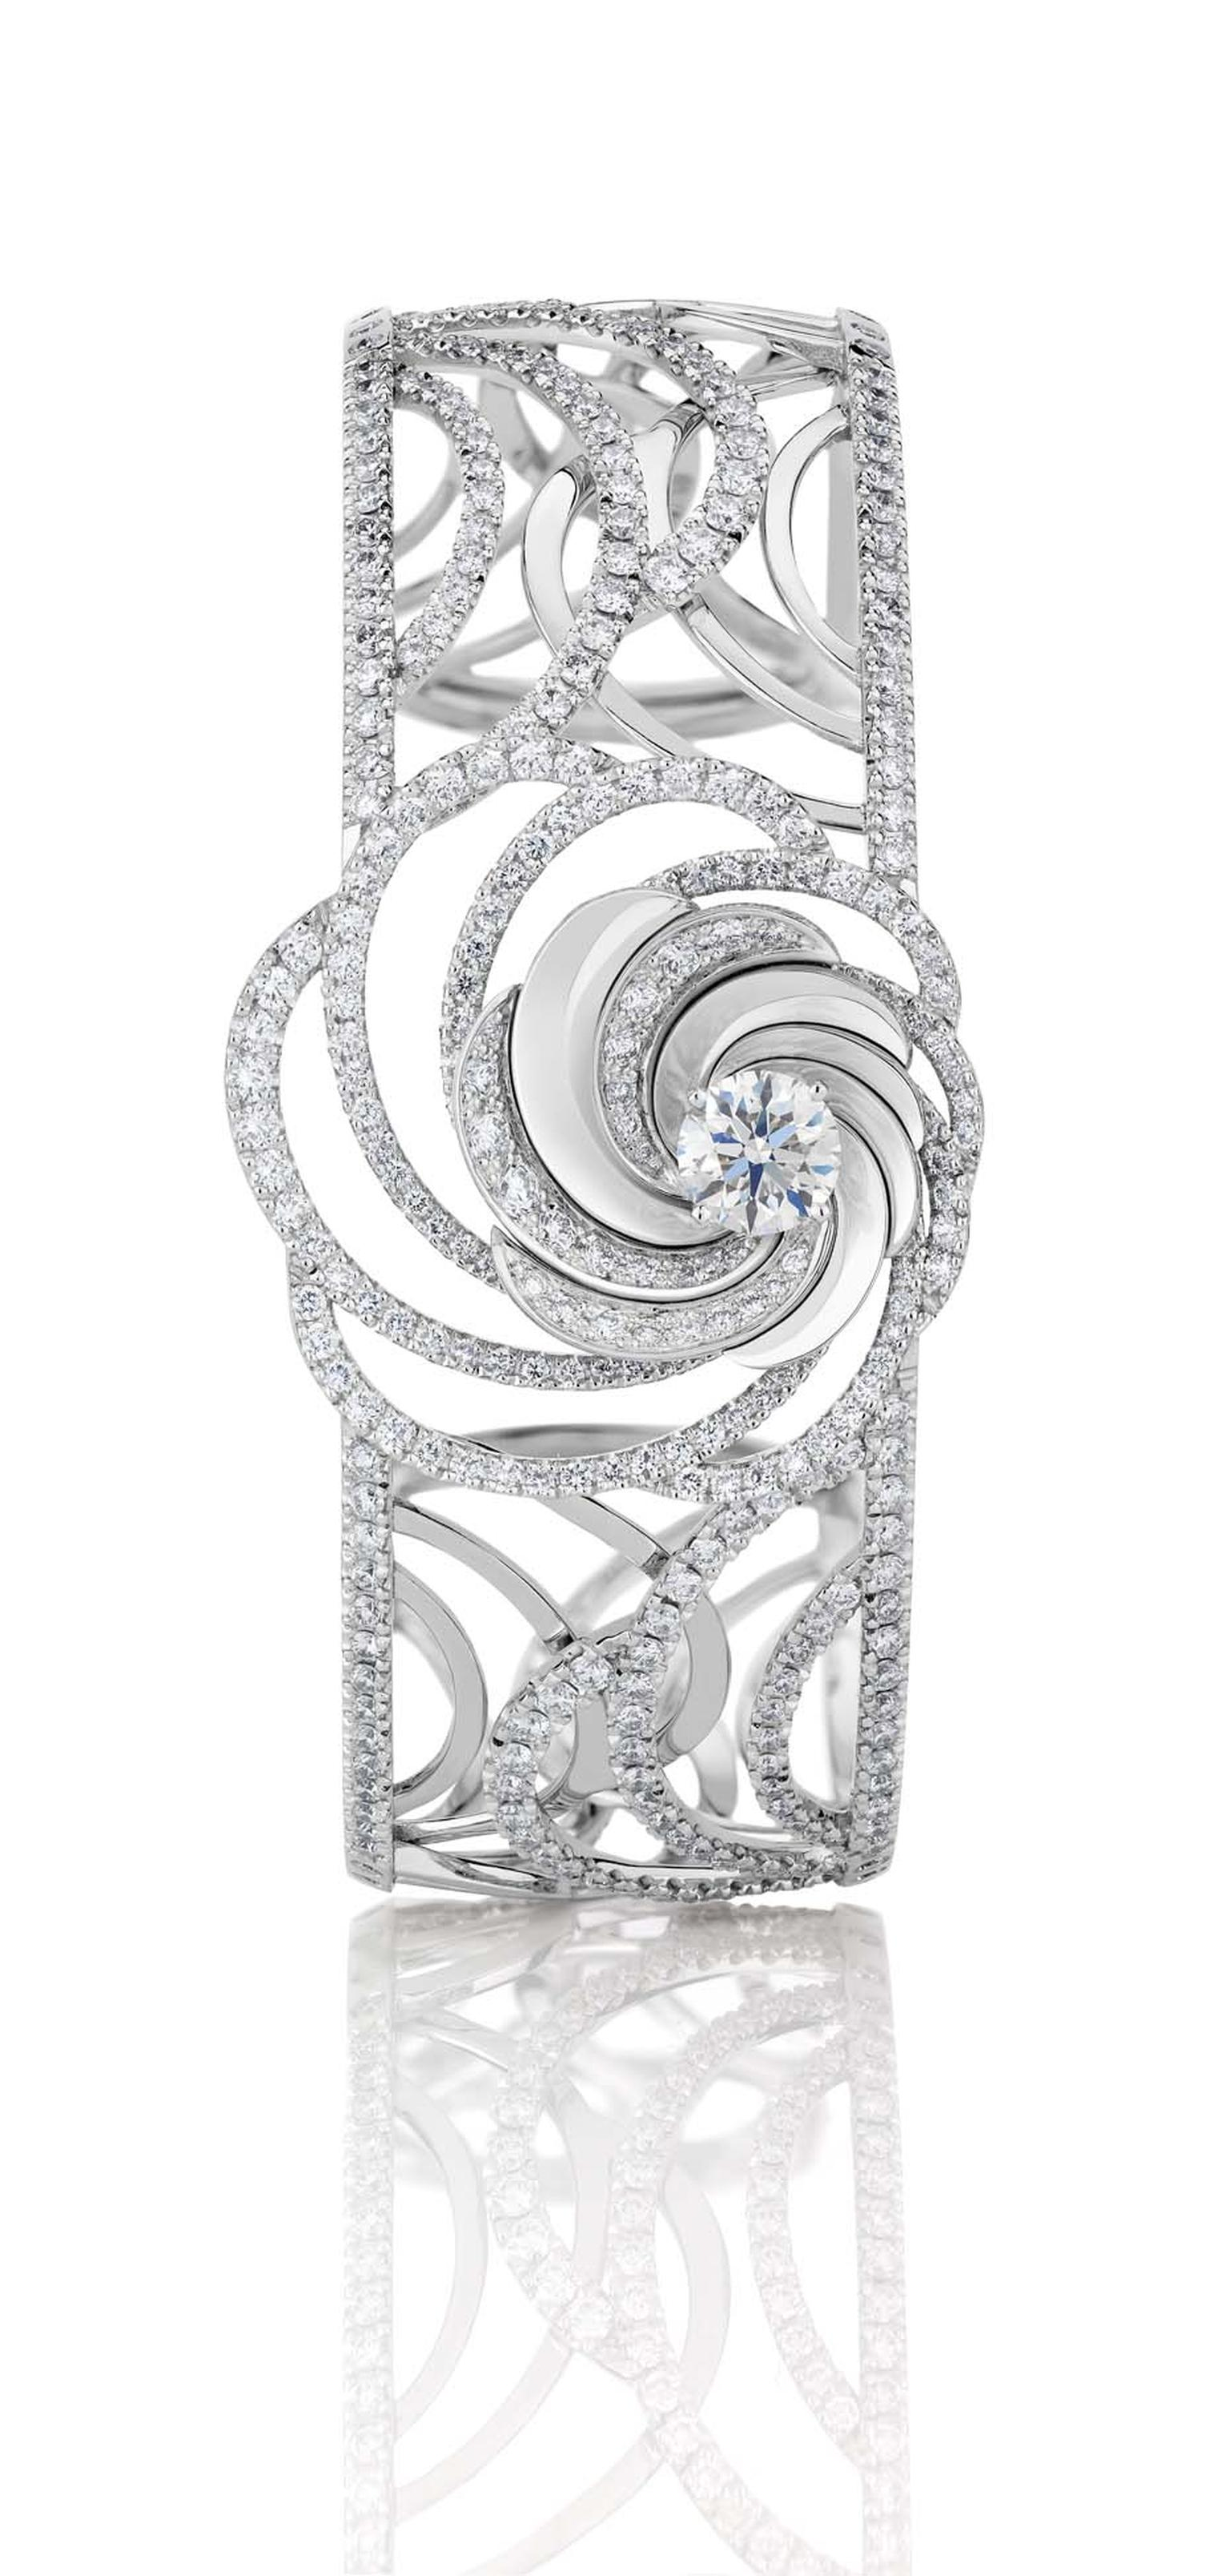 De Beers Aria diamond bracelet, with a series of swirling white gold ribbons set with pavé diamonds surrounding a central brilliant-cut diamond.